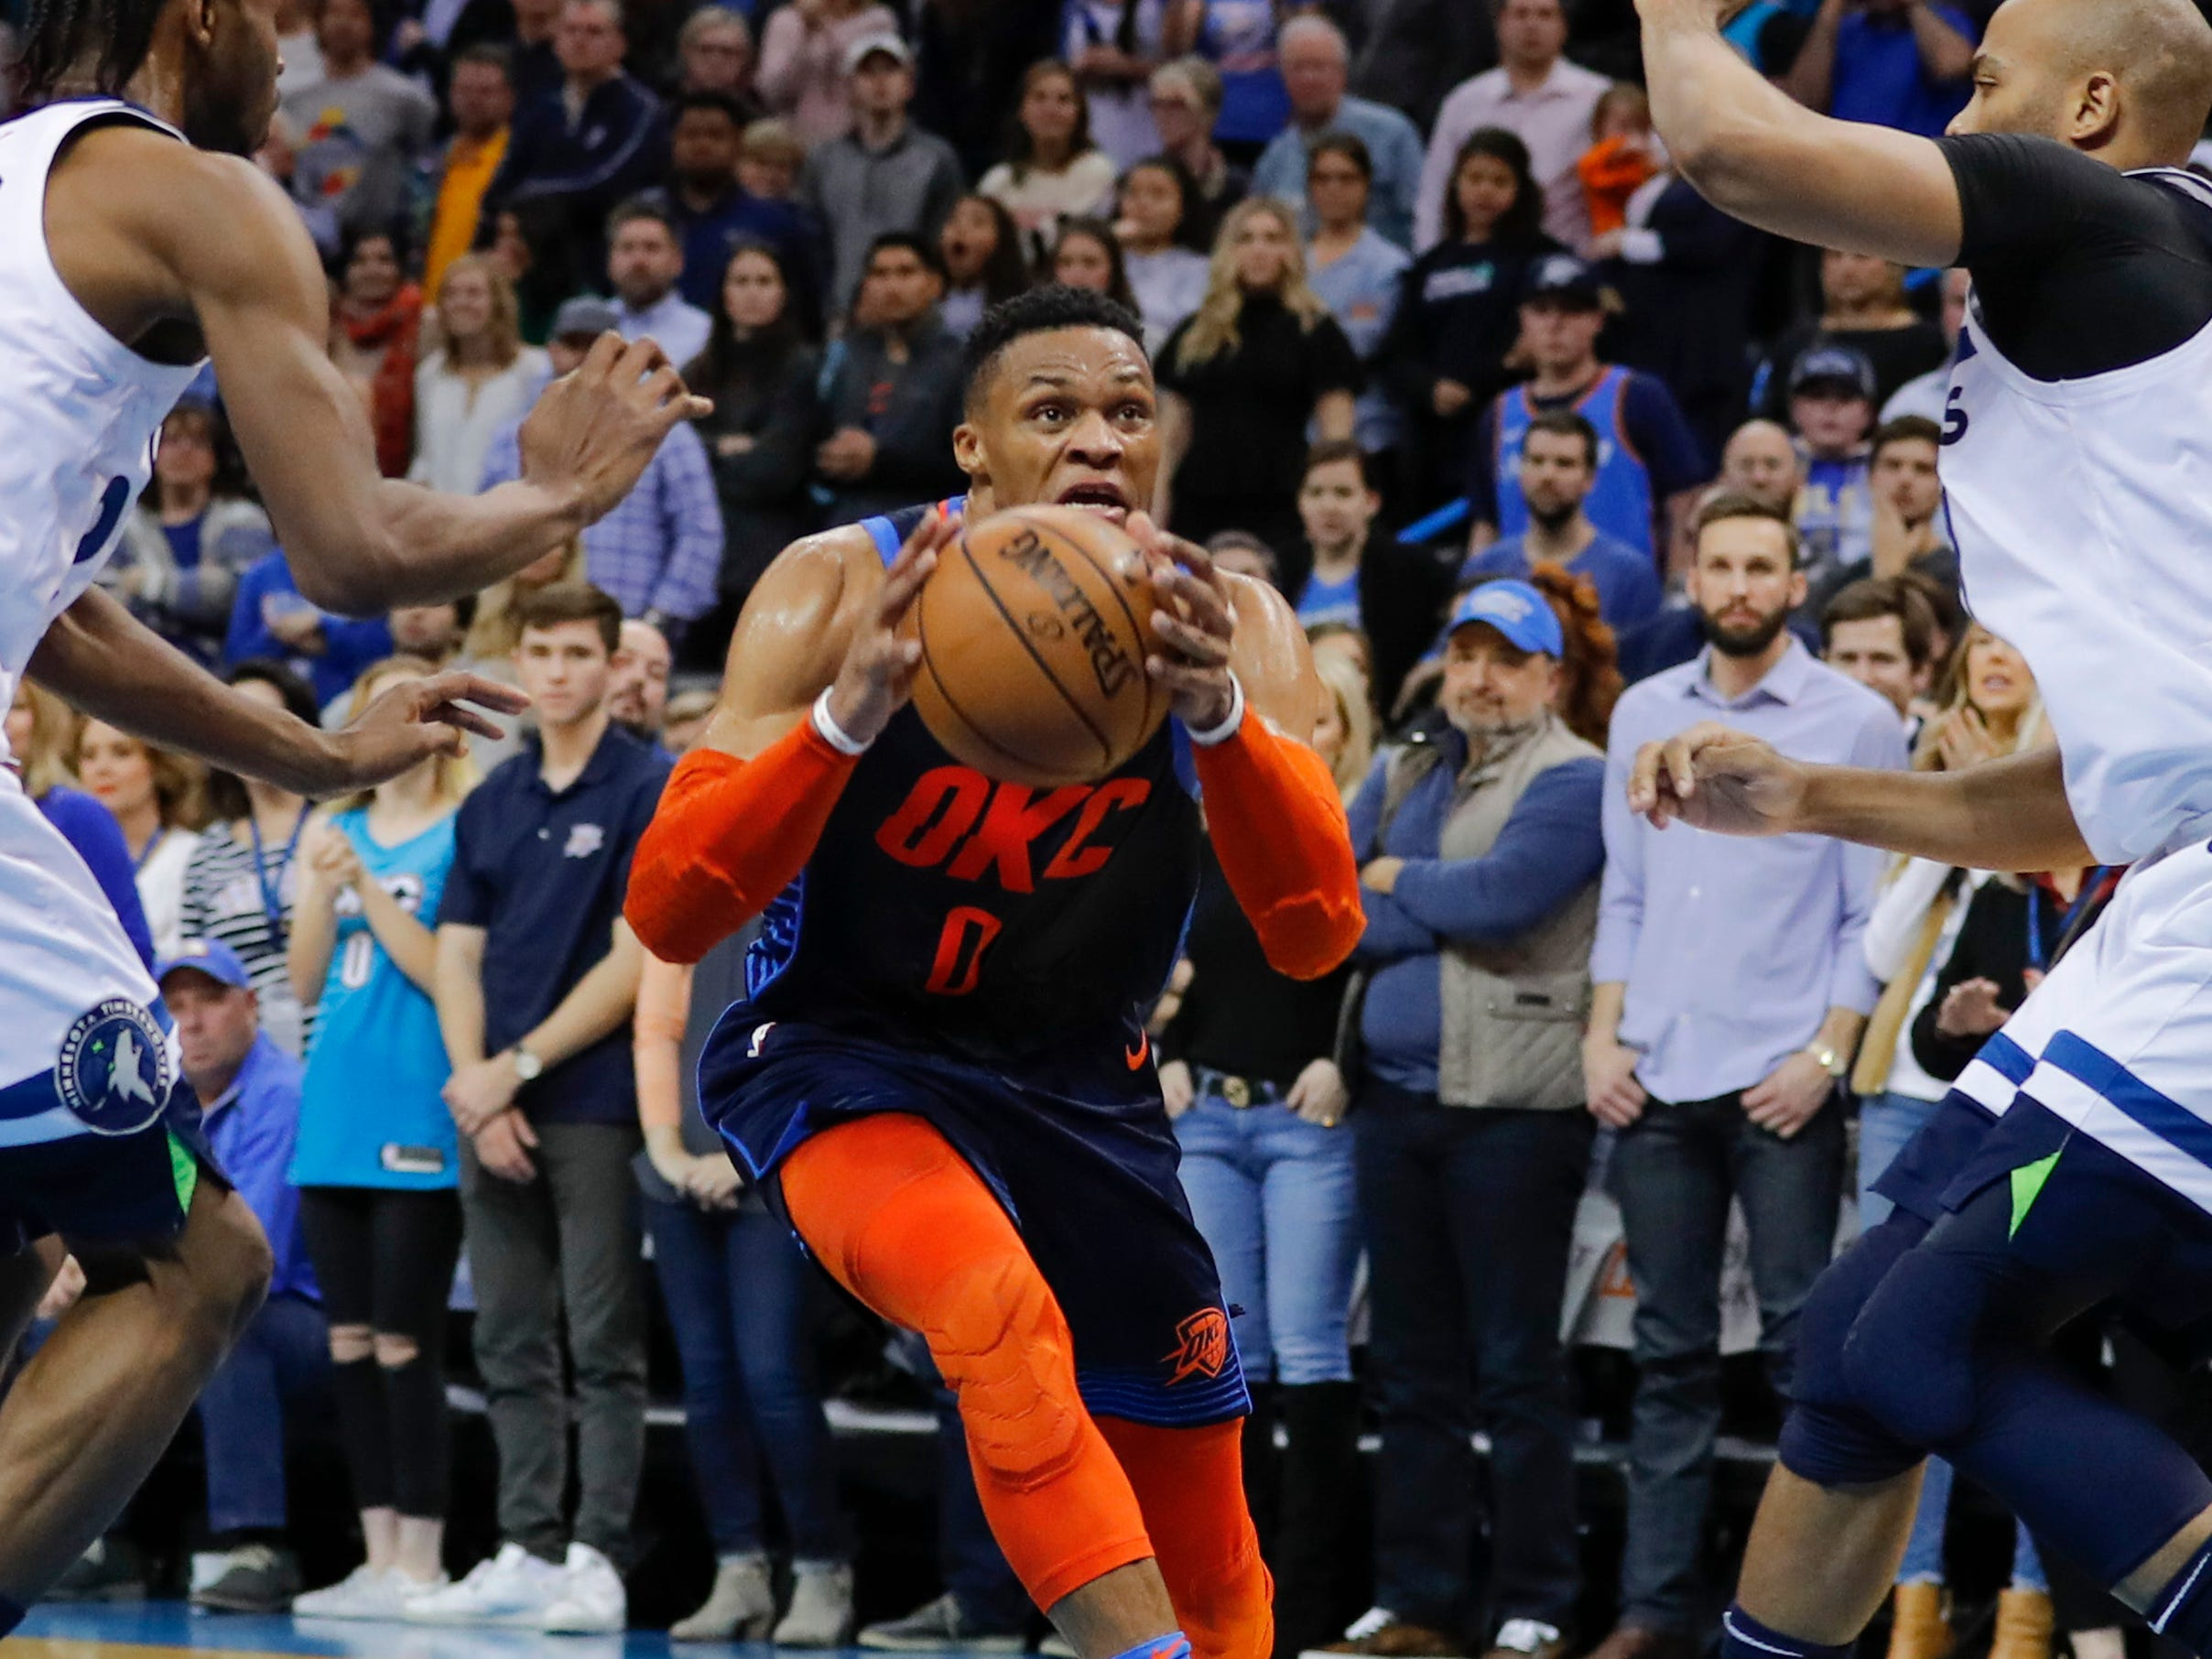 34. Russell Westbrook, Thunder (Dec. 23): 23 points, 11 rebounds, 10 assist in 114-112 loss to T'wolves (ninth of season).